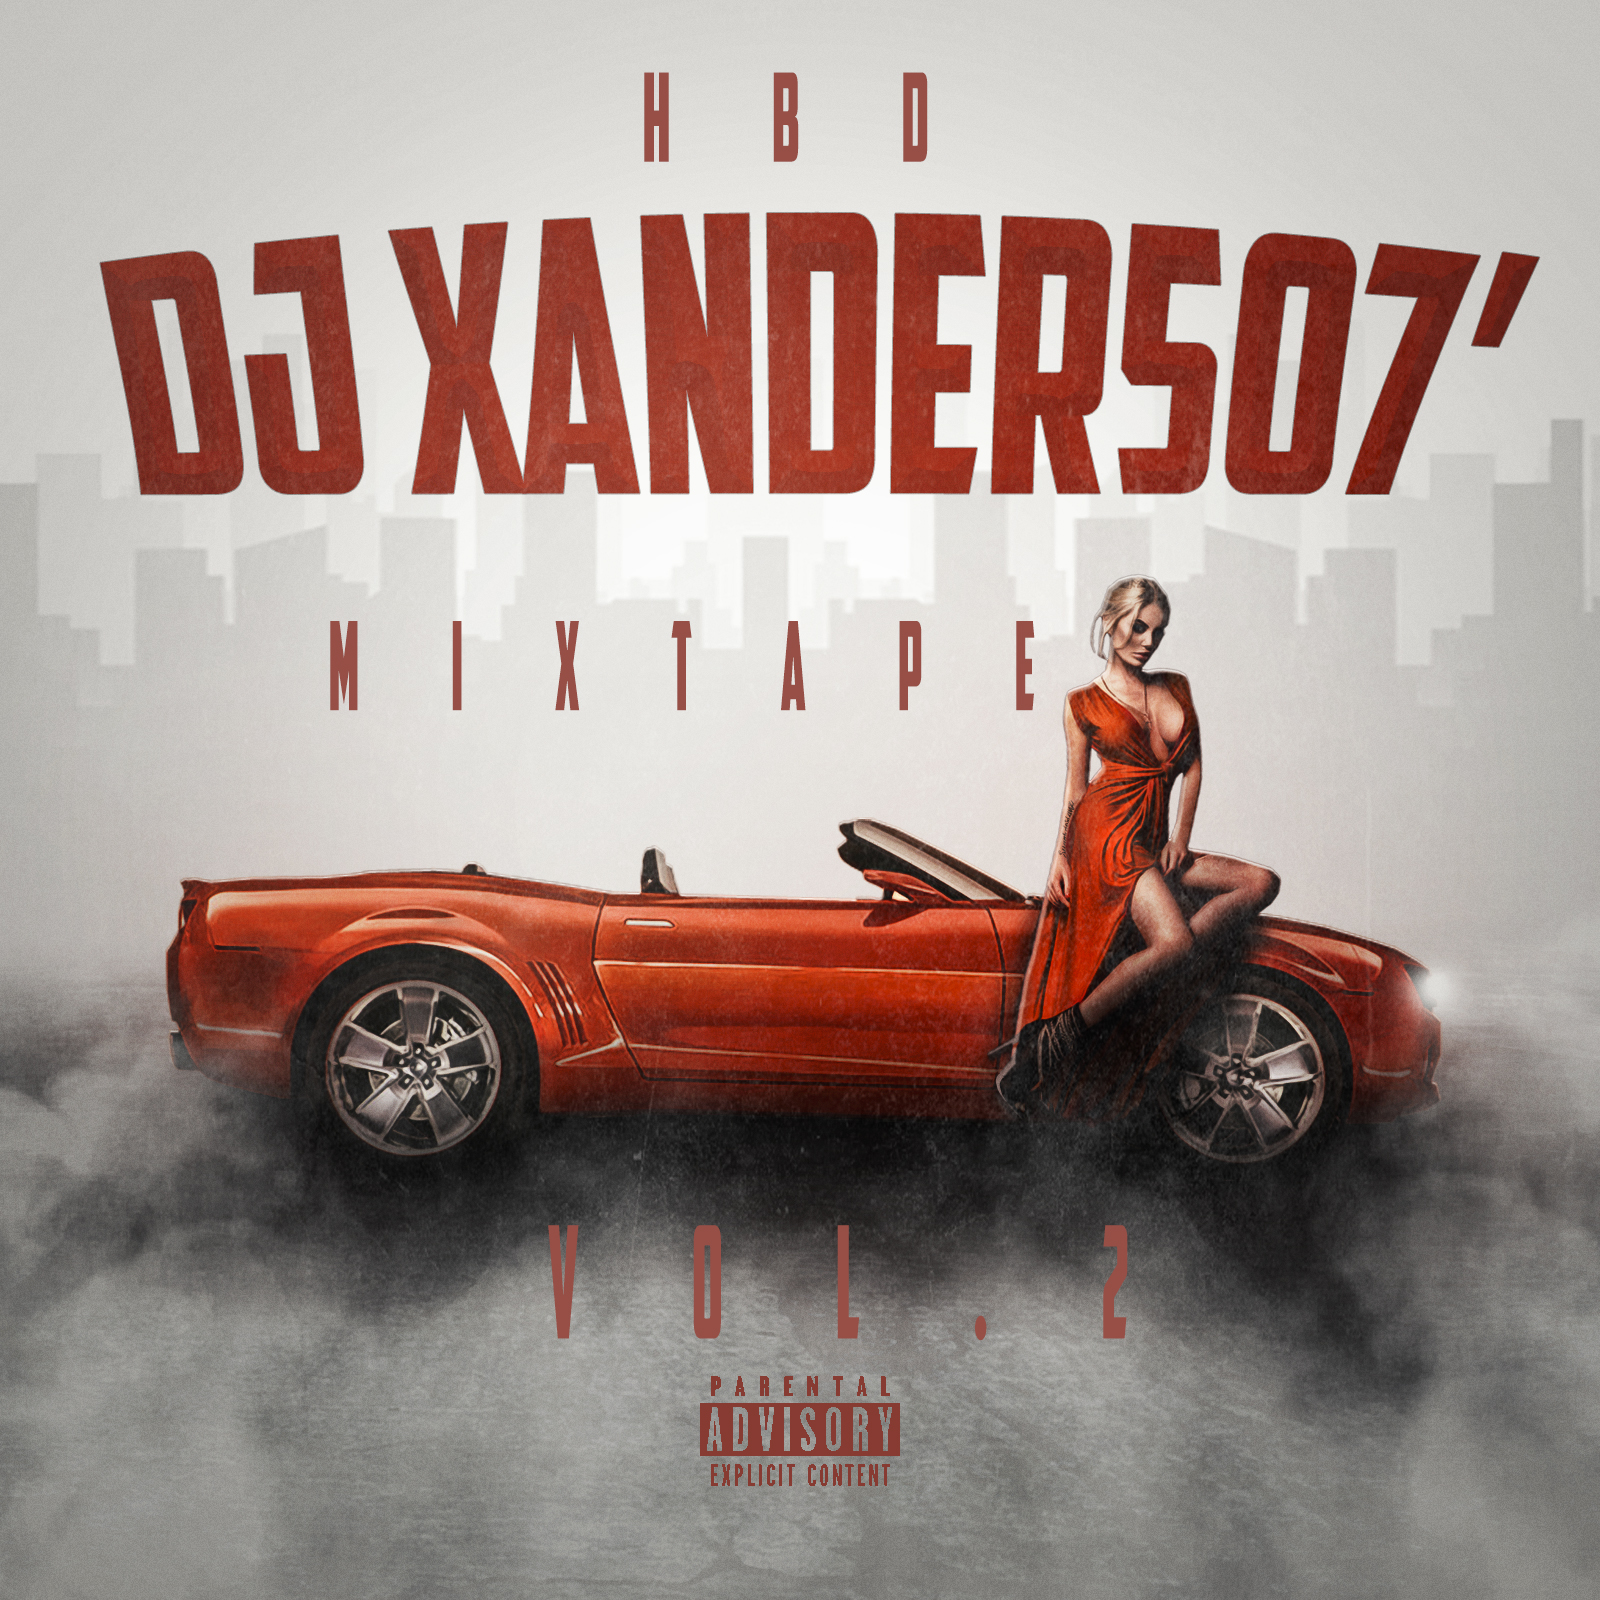 Dj Xander507 - HBD MixTape Vol.2